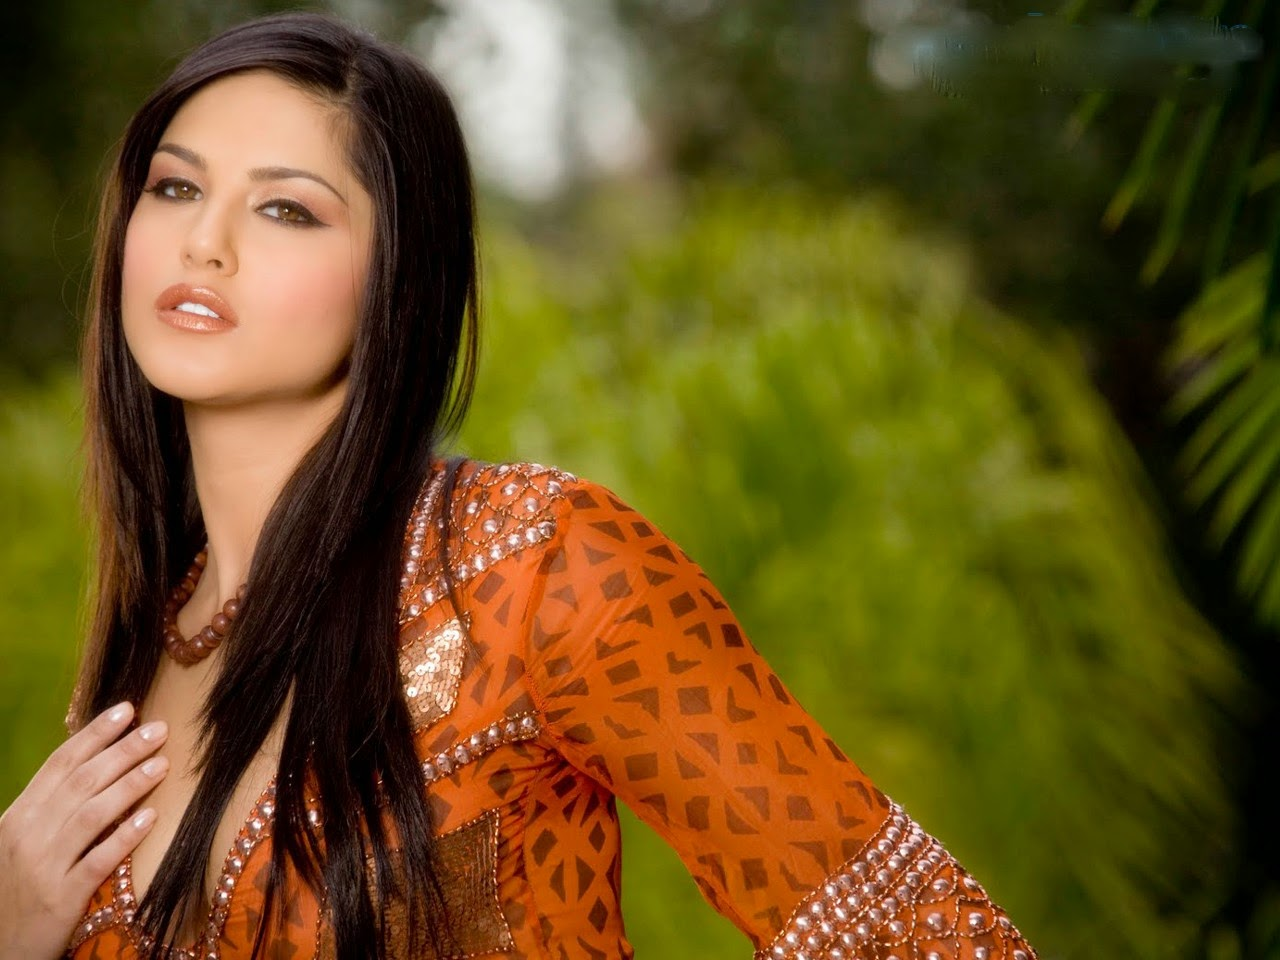 Sunny Leone HD Wallpapers | Download Free High Definition Desktop Backgrounds